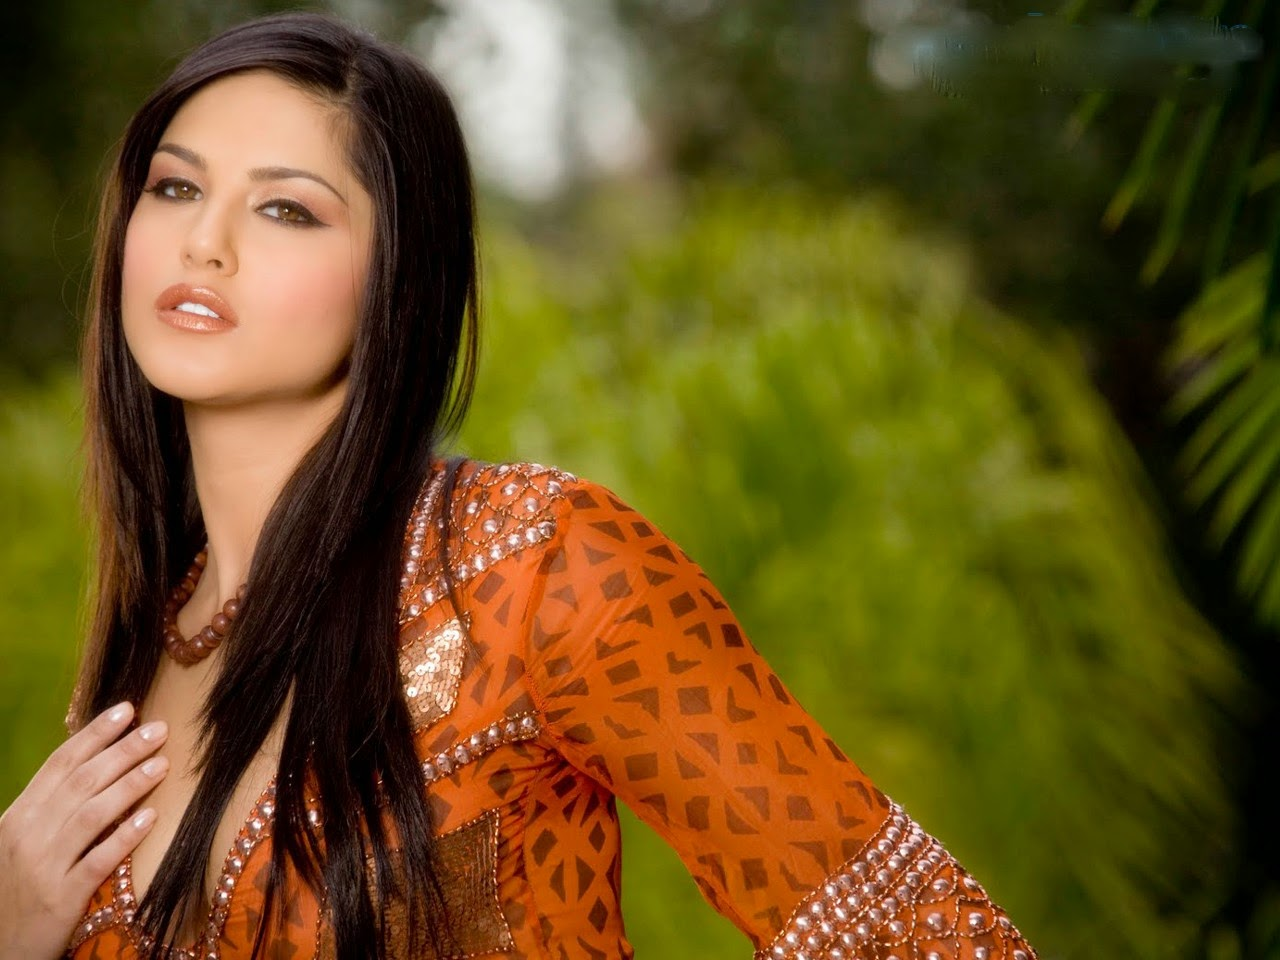 Sunny Leone HD Wallpapers | Download Free High Definition Desktop Backgrounds